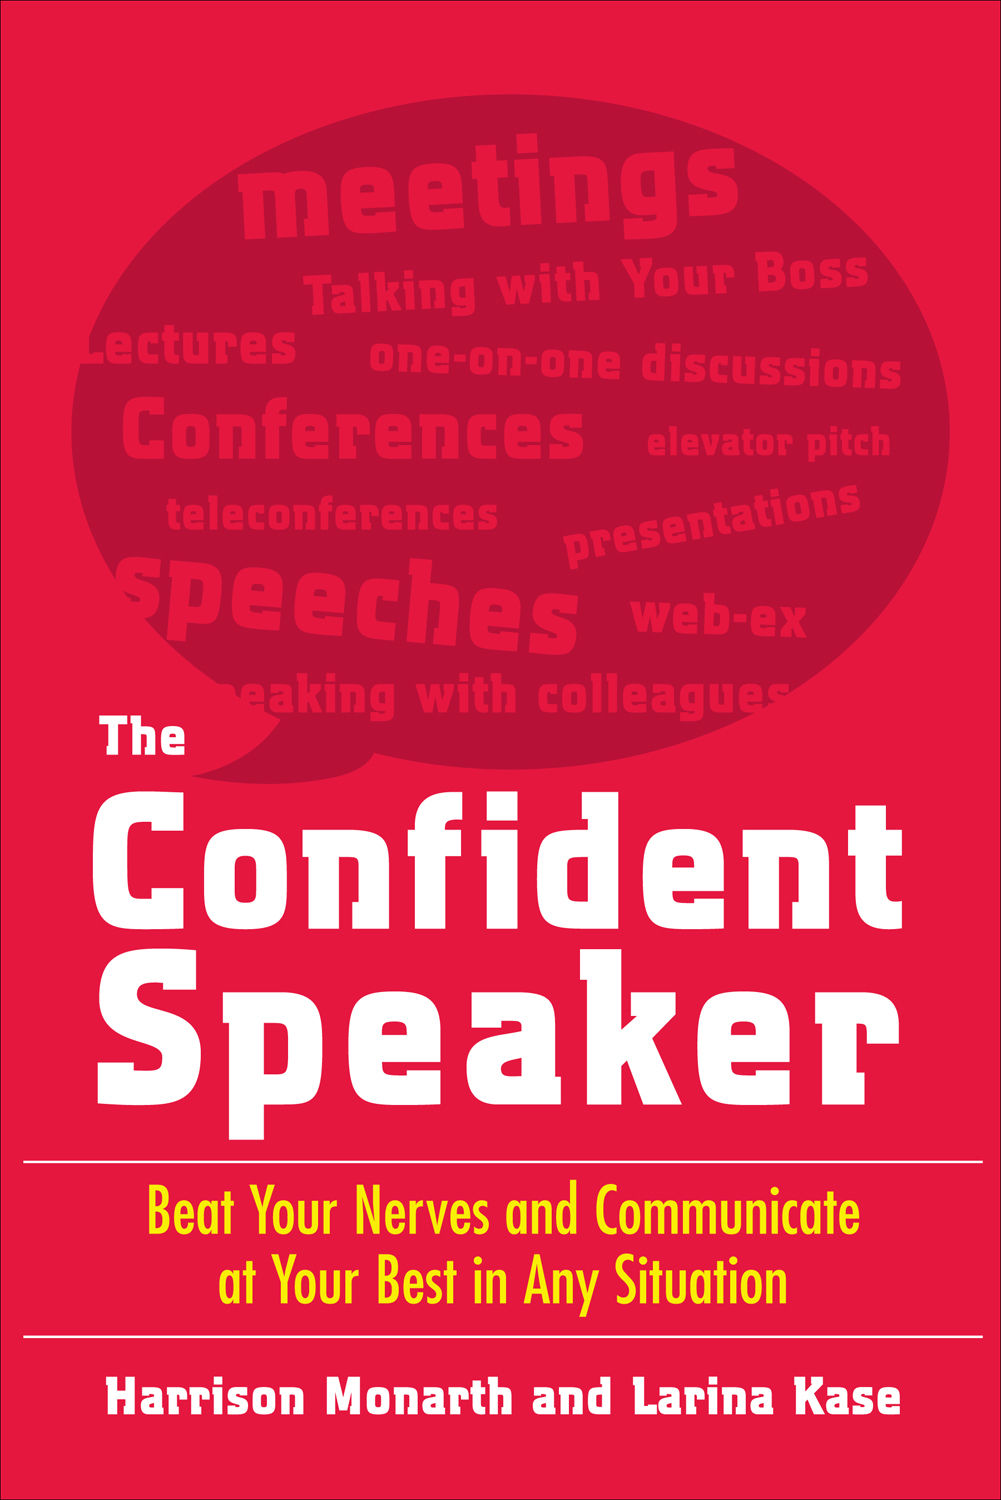 Download Ebook The Confident Speaker: Beat Your Nerves and Communicate at Your Best in Any Situation by Harrison Monarth Pdf